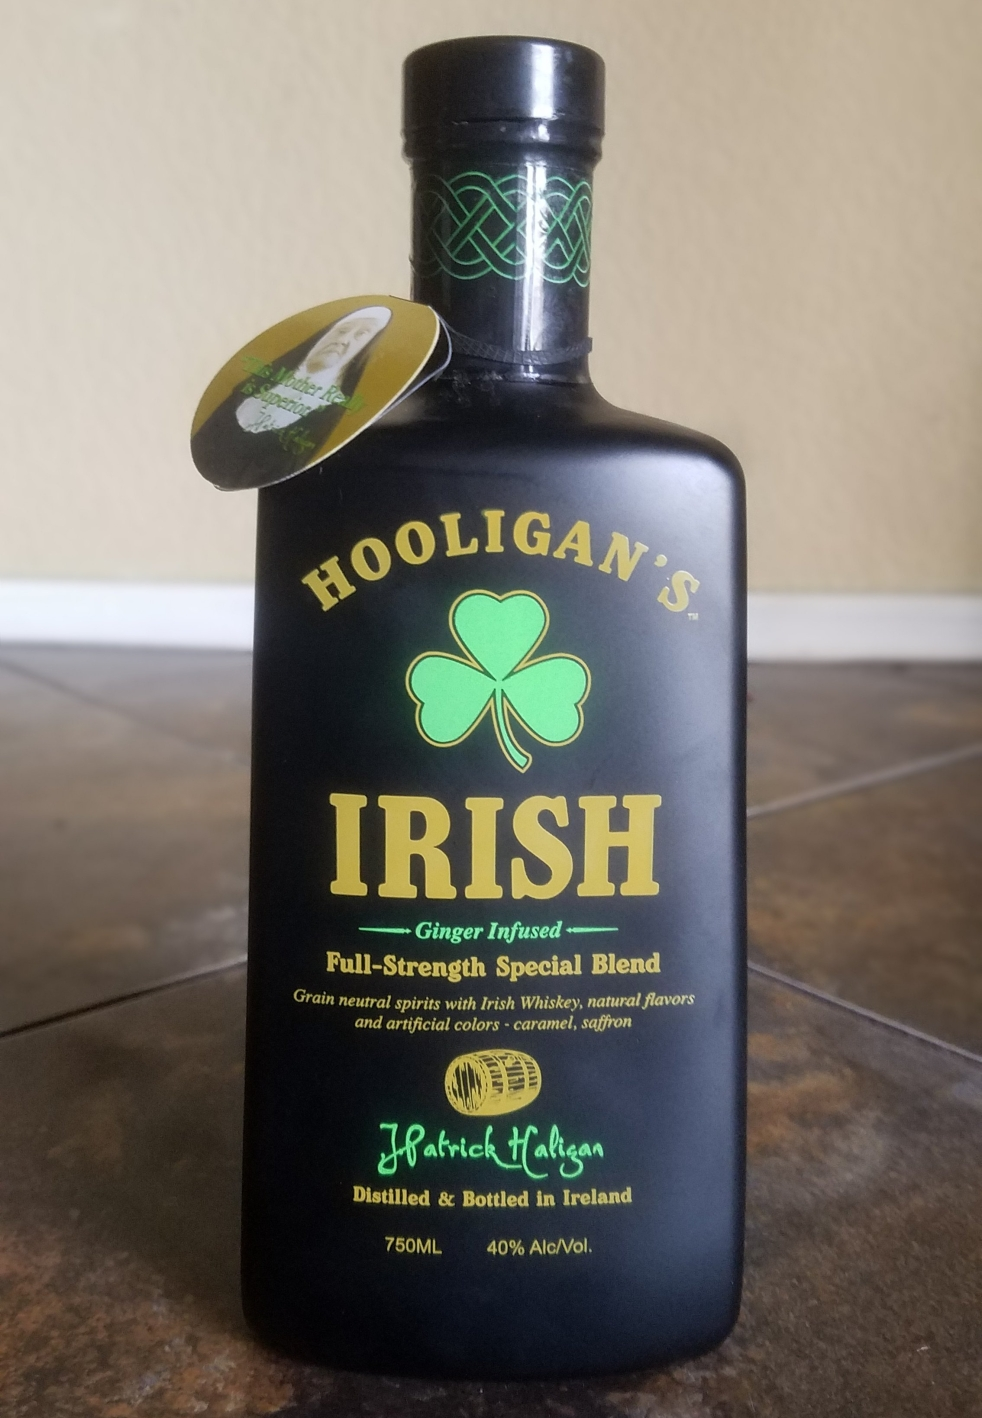 Hooligans Irish whiskey in a matte black bottle